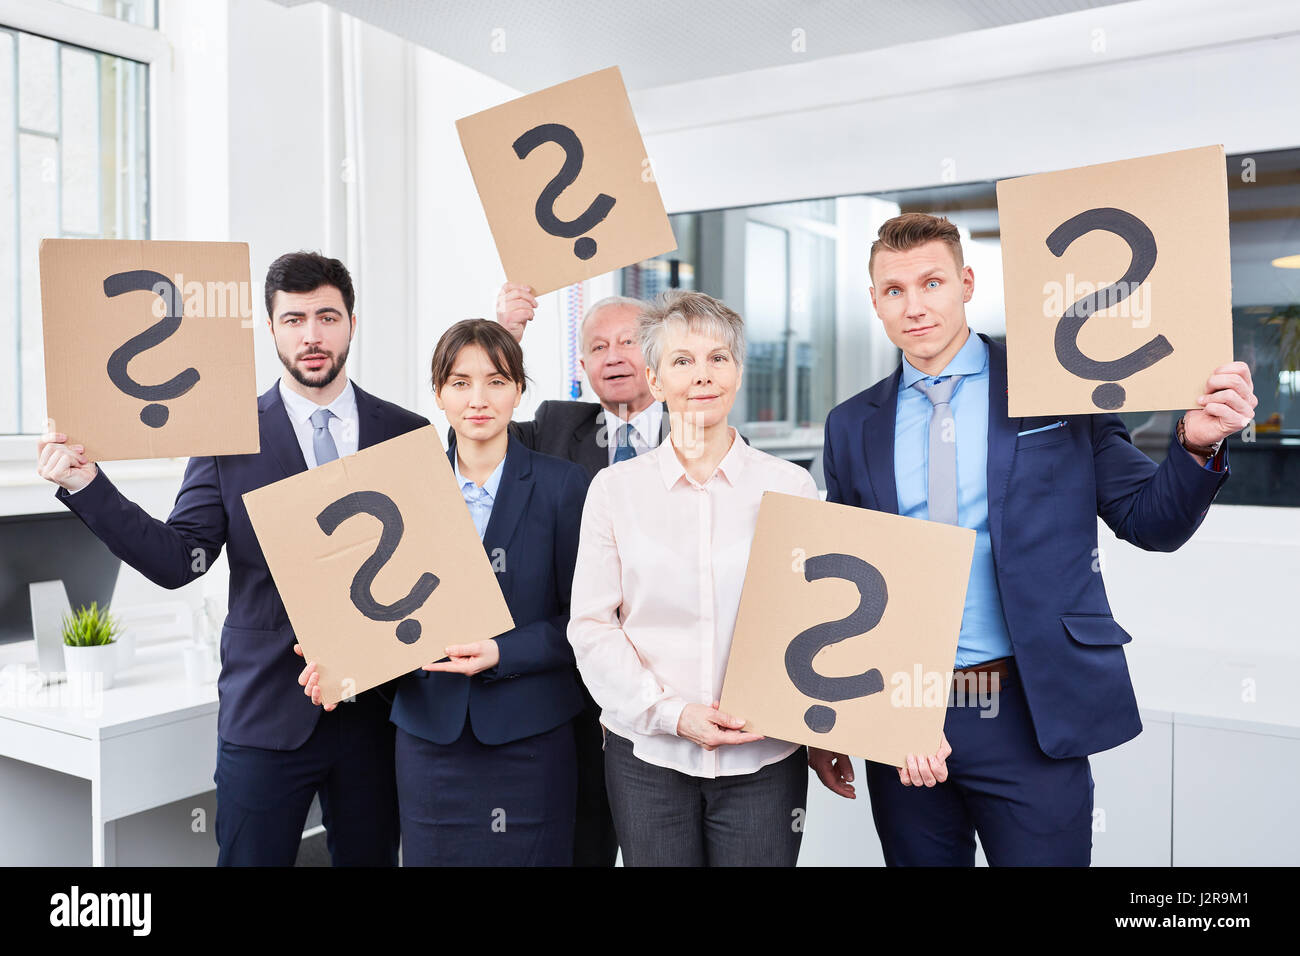 Business team holds question marks for doubt - Stock Image